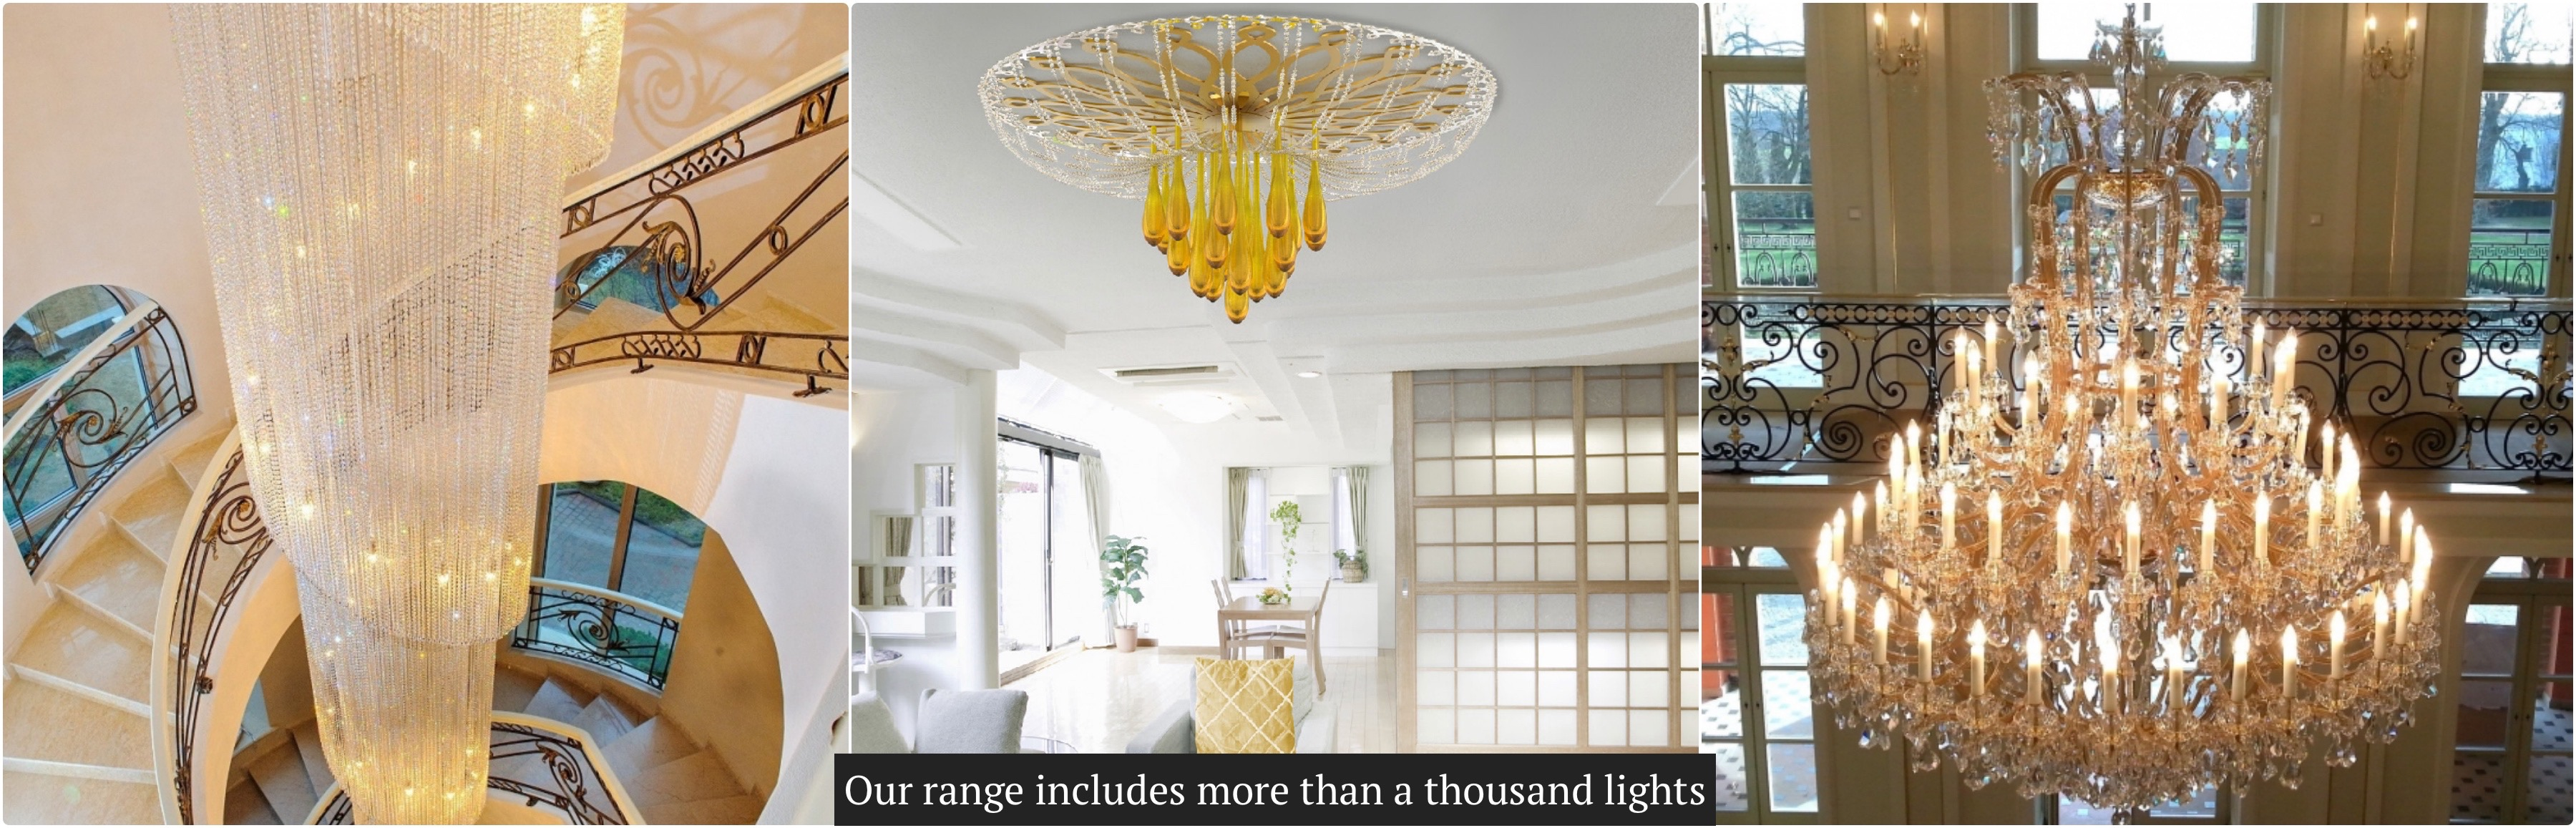 Lighting Online Online Store Artglass Chandeliers Lamps And Lights In Switzerland